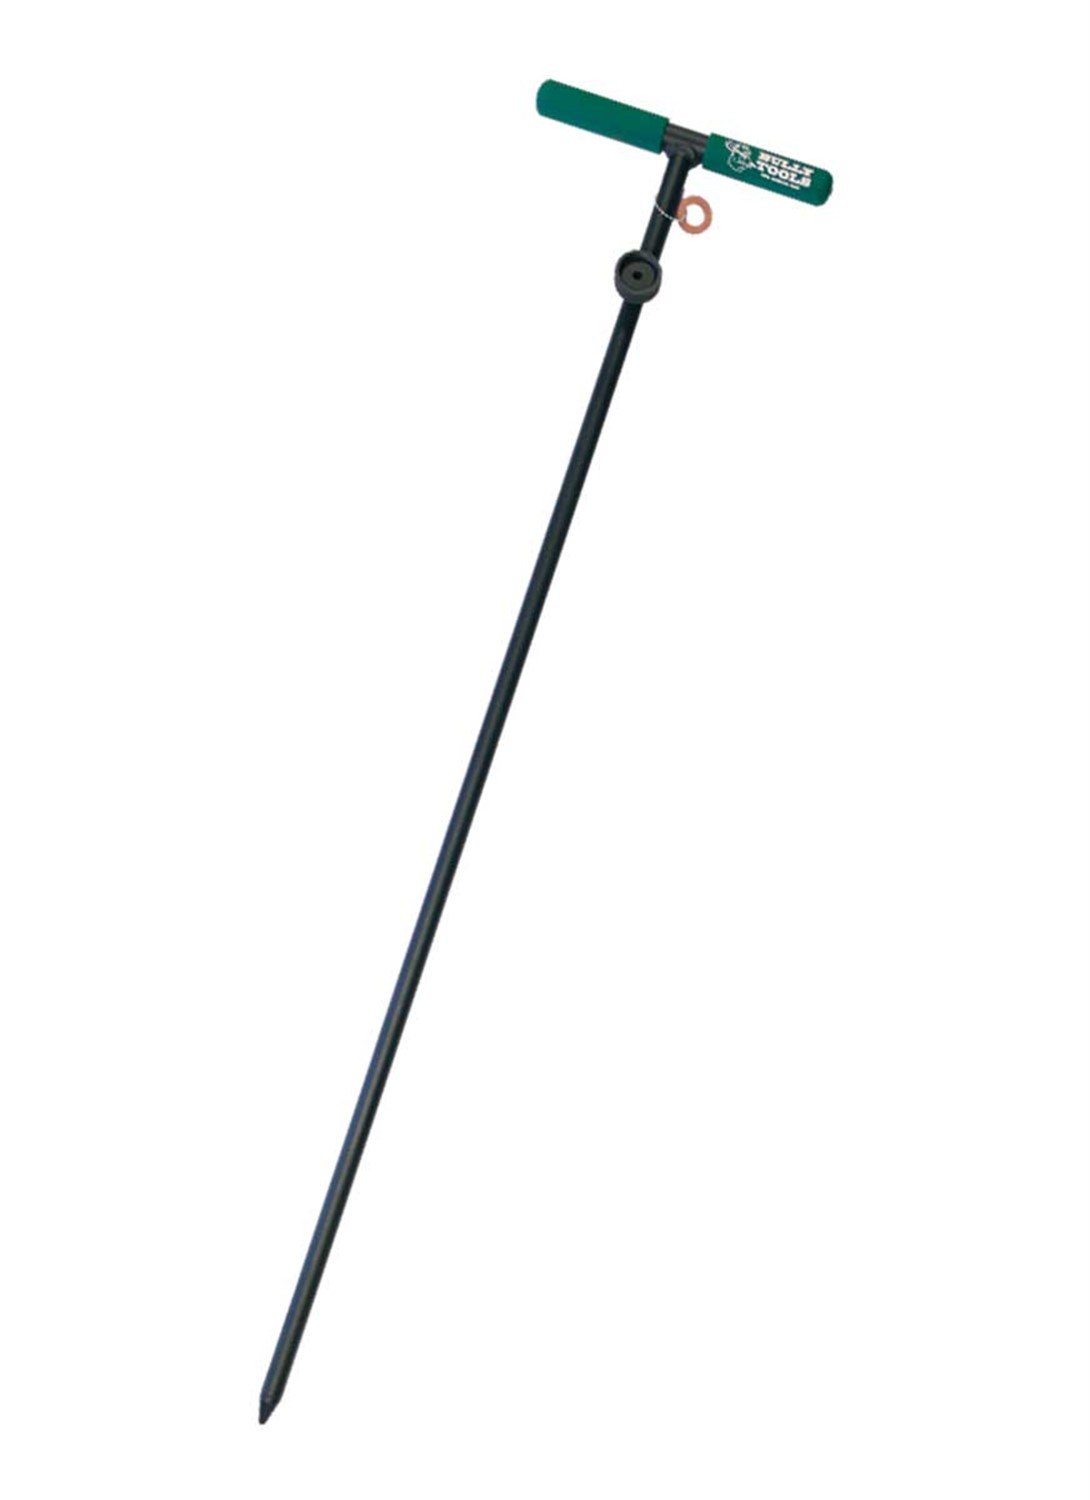 Bully Tools 92300 Root Soaker Irrigation Tool with Steel T Style Handle